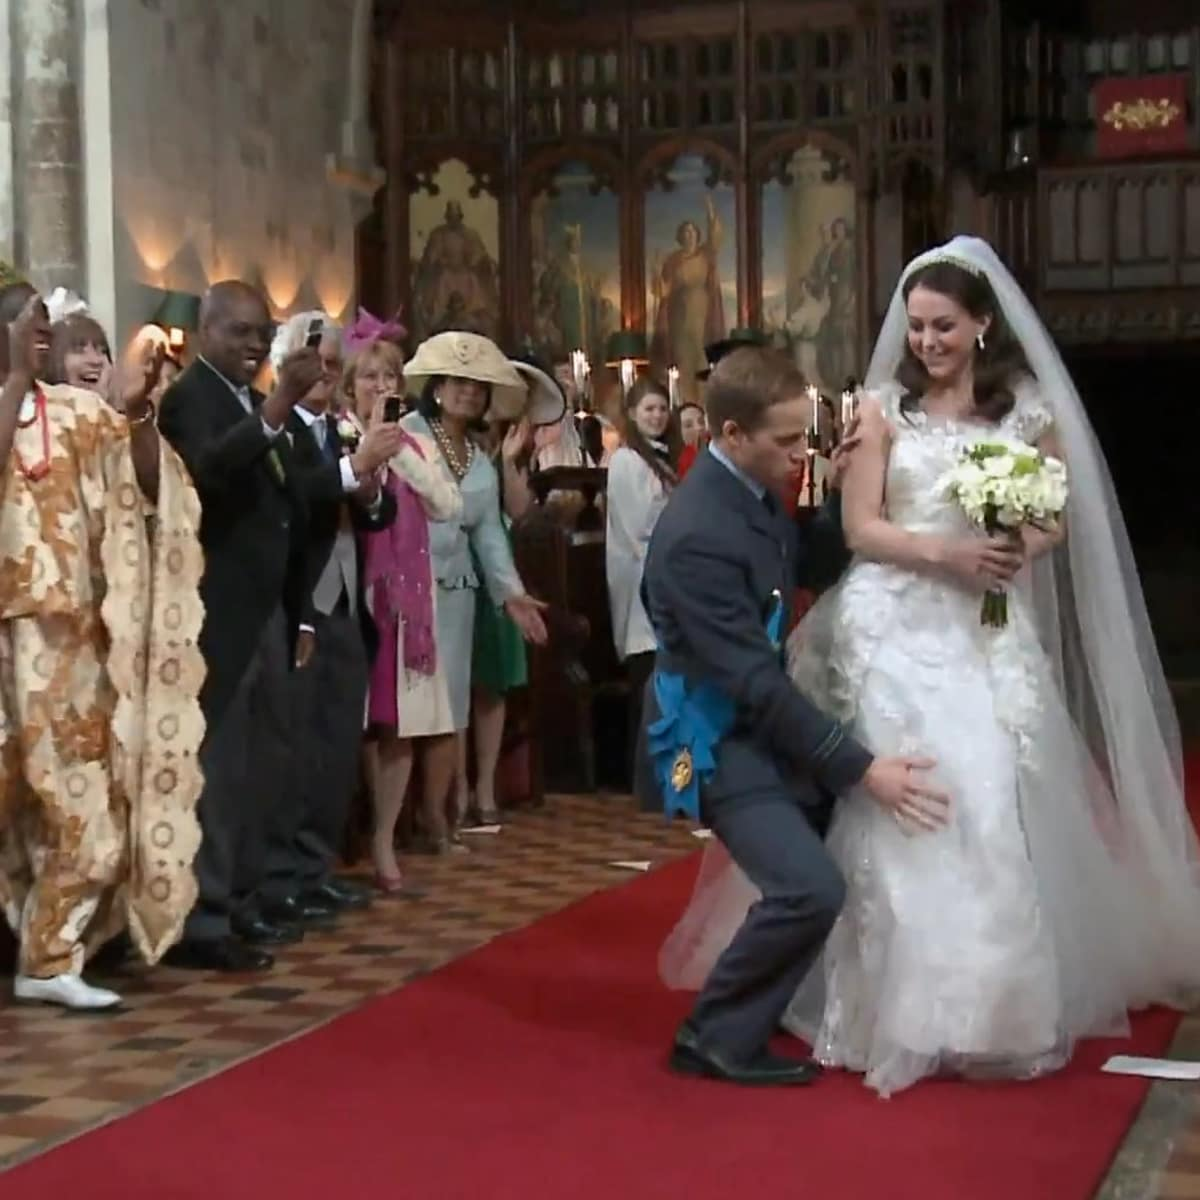 News_T-Mobile_Royal Wedding_video